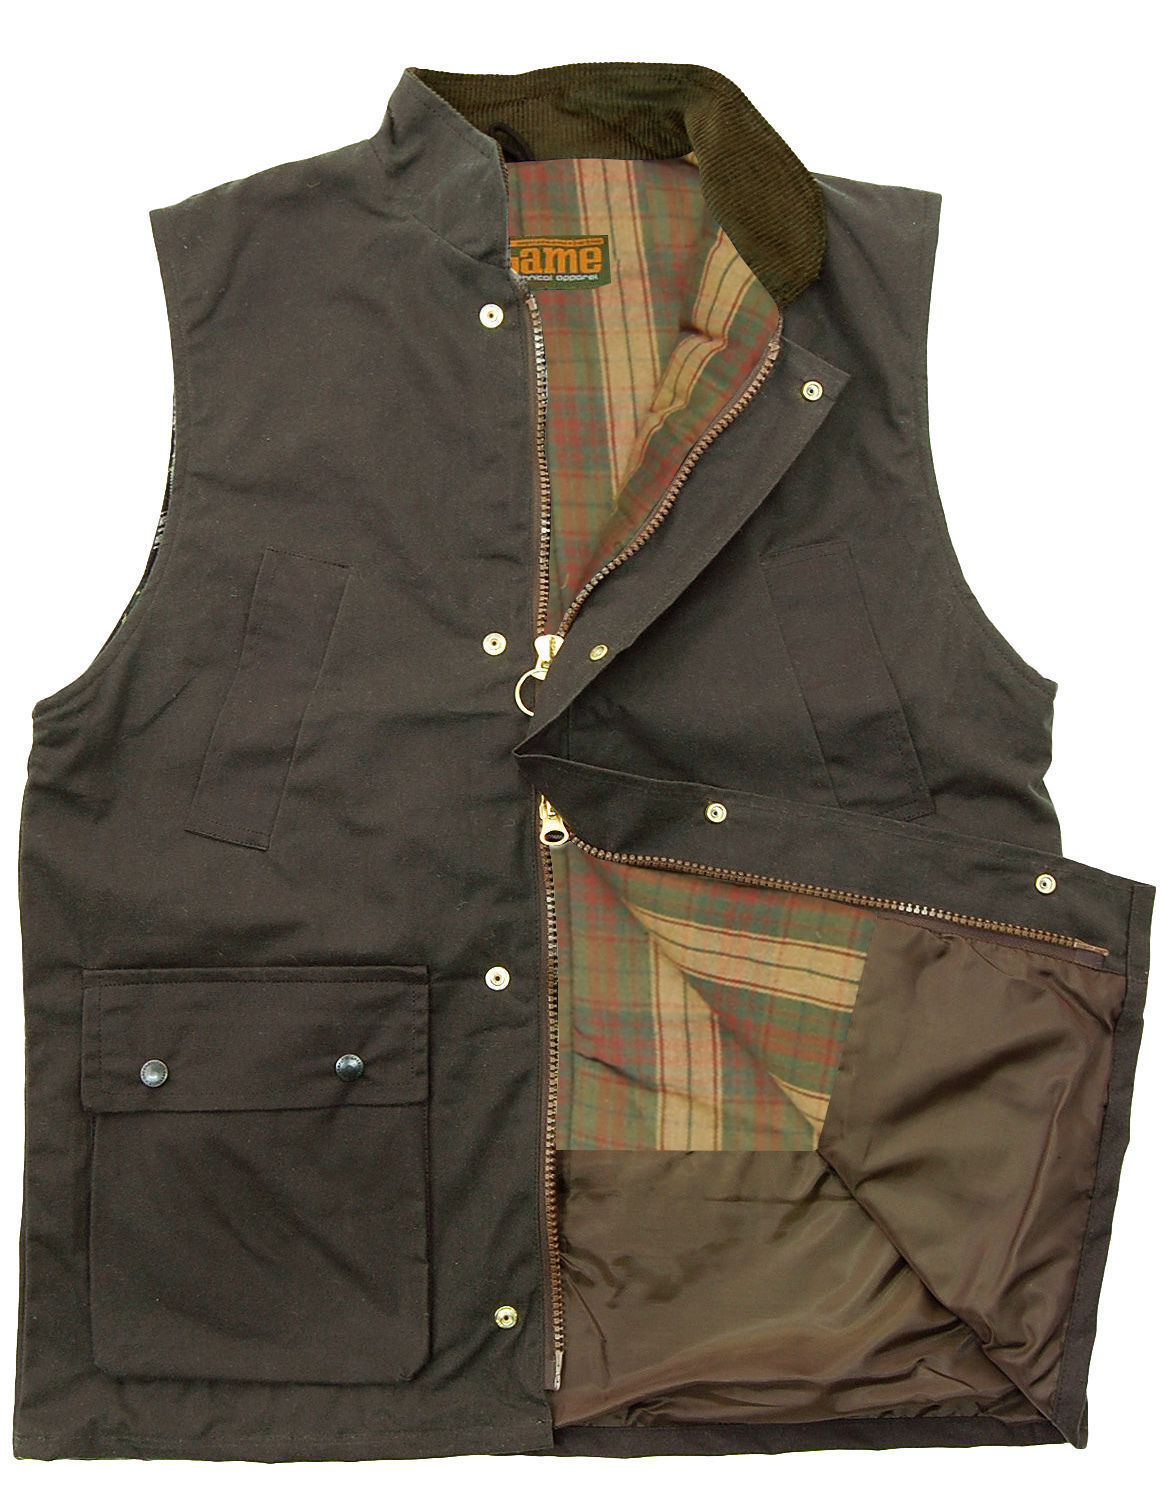 As expected in a men's body warmer, the quilted material will keep you warm should the temperature drop, while the lightweight design is a perfect accompaniment for a day tackling the great outdoors. Browse our full range of men's gilets online. Alternatively, view our selection of men's coats and jackets.